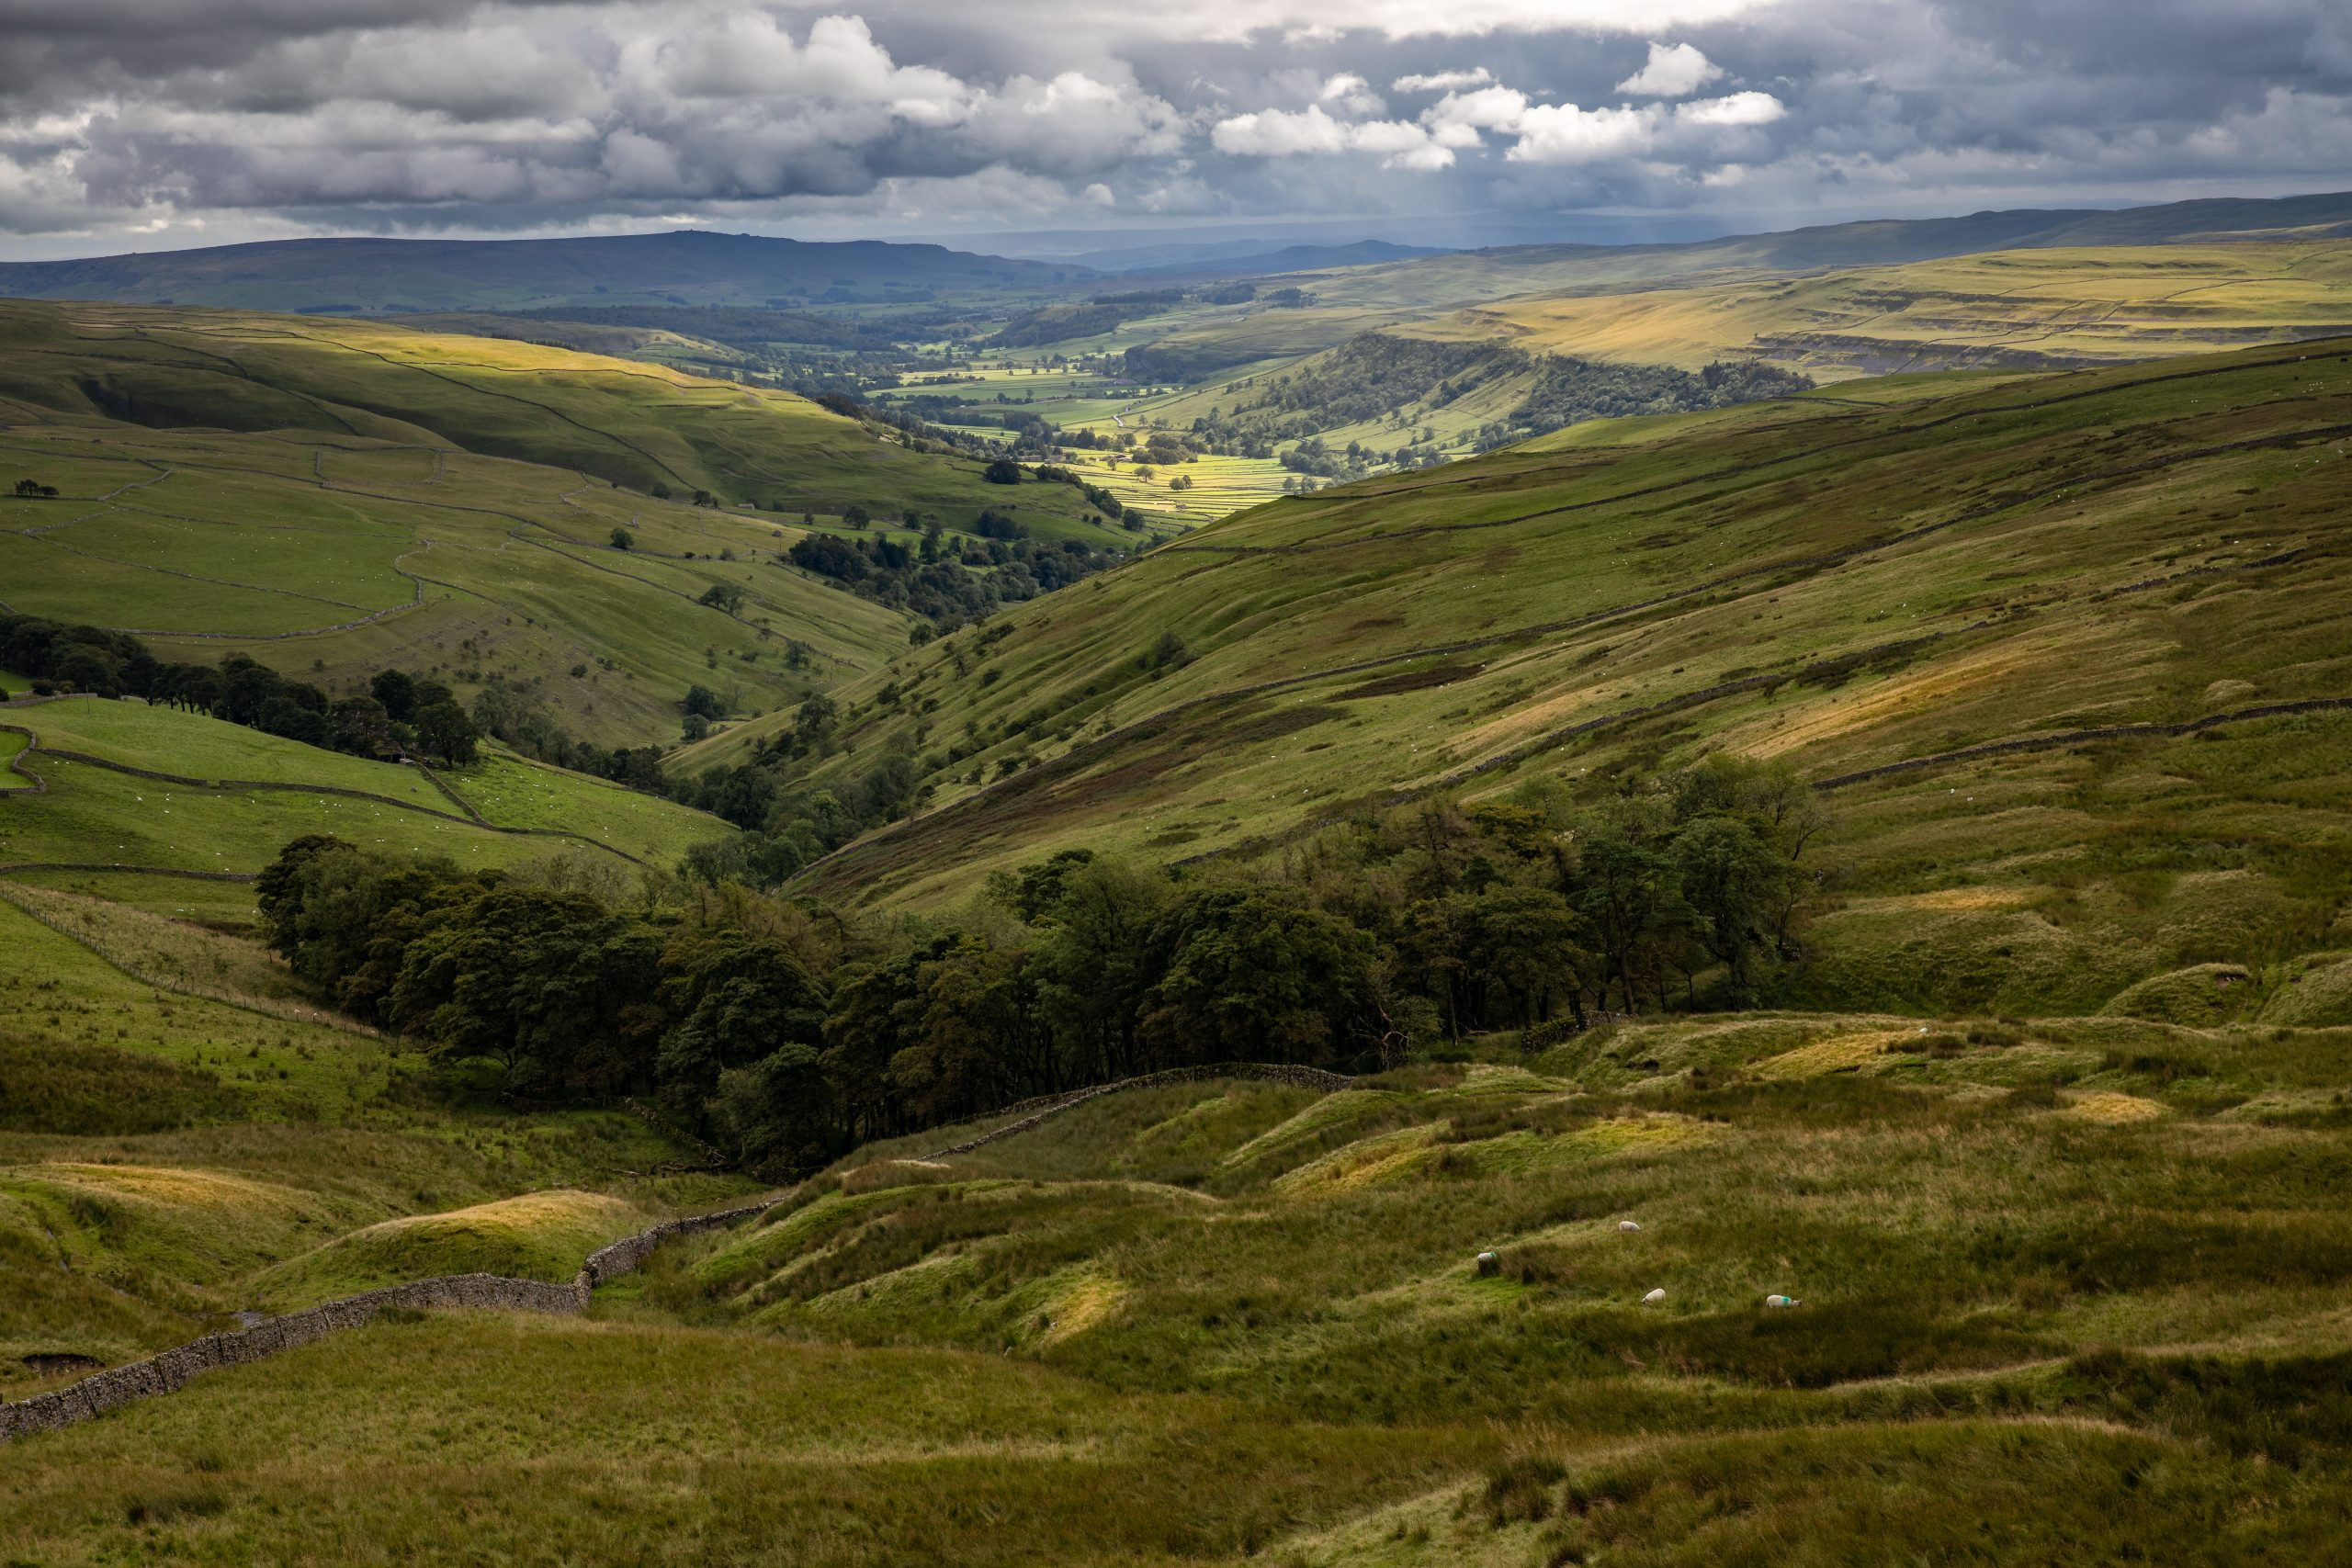 The view looking along Wharfedale from Cam Head above Kettlewell in the Yorkshire Dales all the way to the area of Ilkley